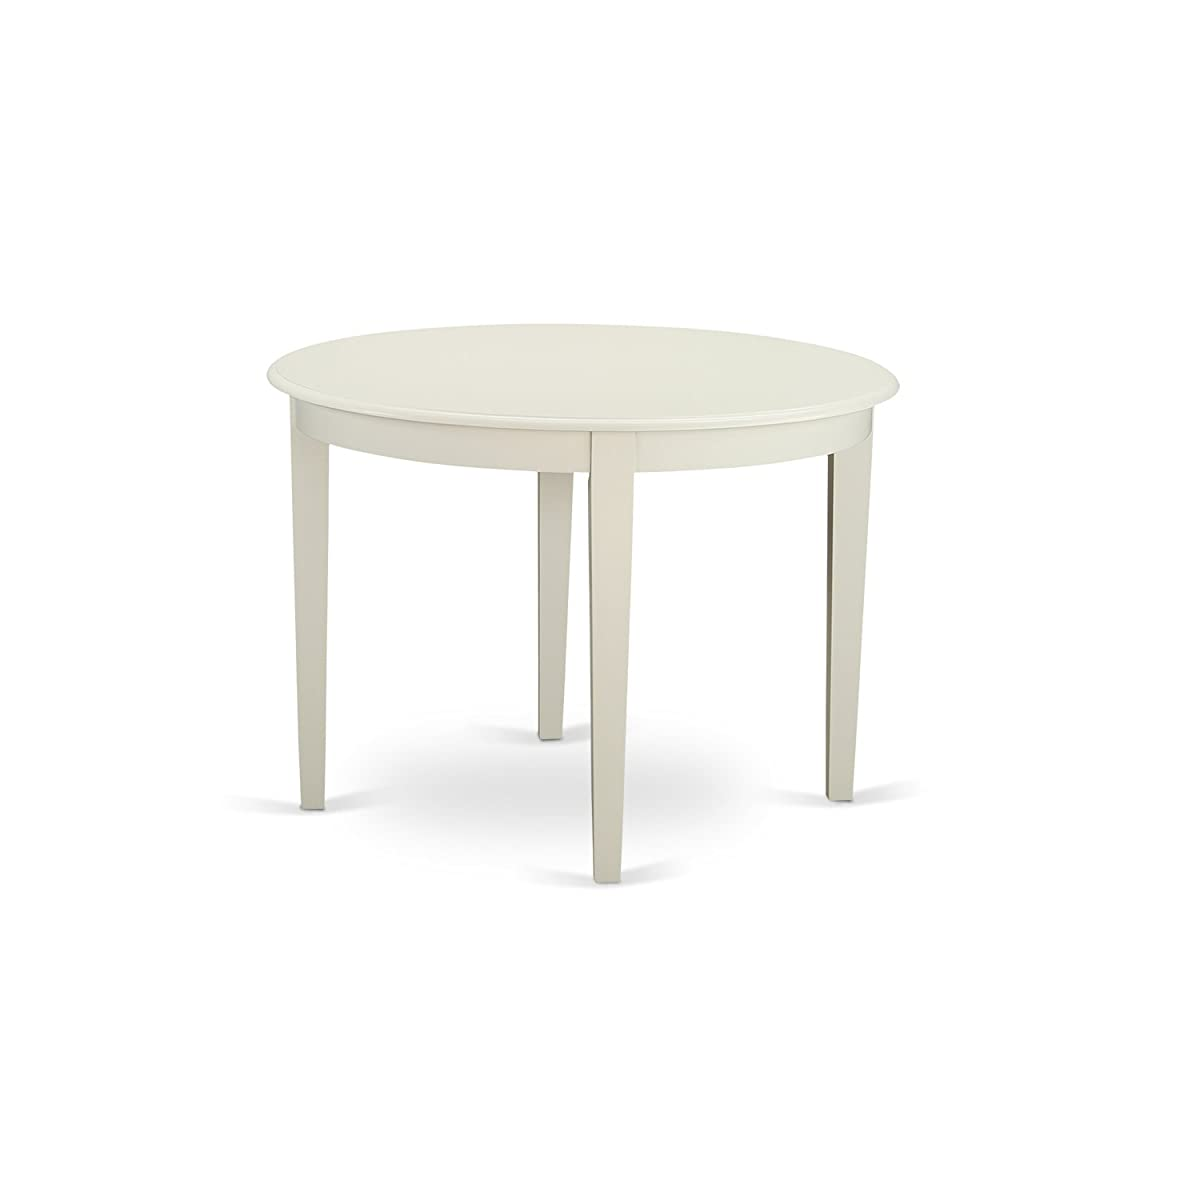 East West Furniture BOT-WHI-T Boston Table Round with 4 Tapered Legs, 42""